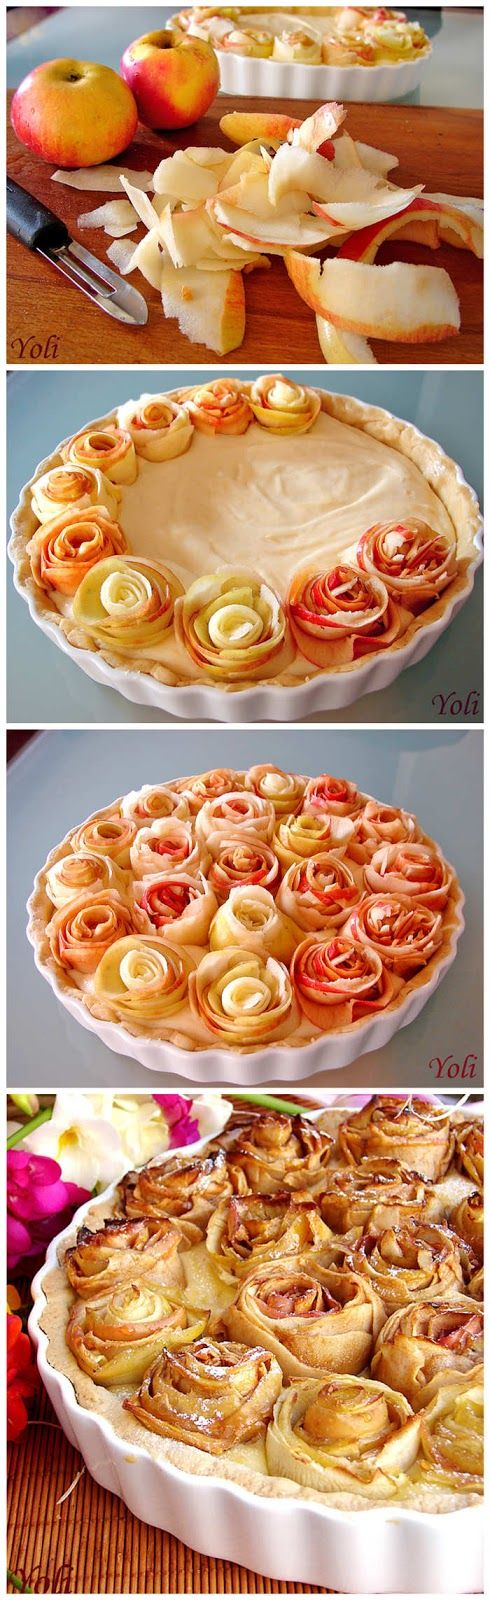 Apple pie with roses...almost too beautiful to eat!